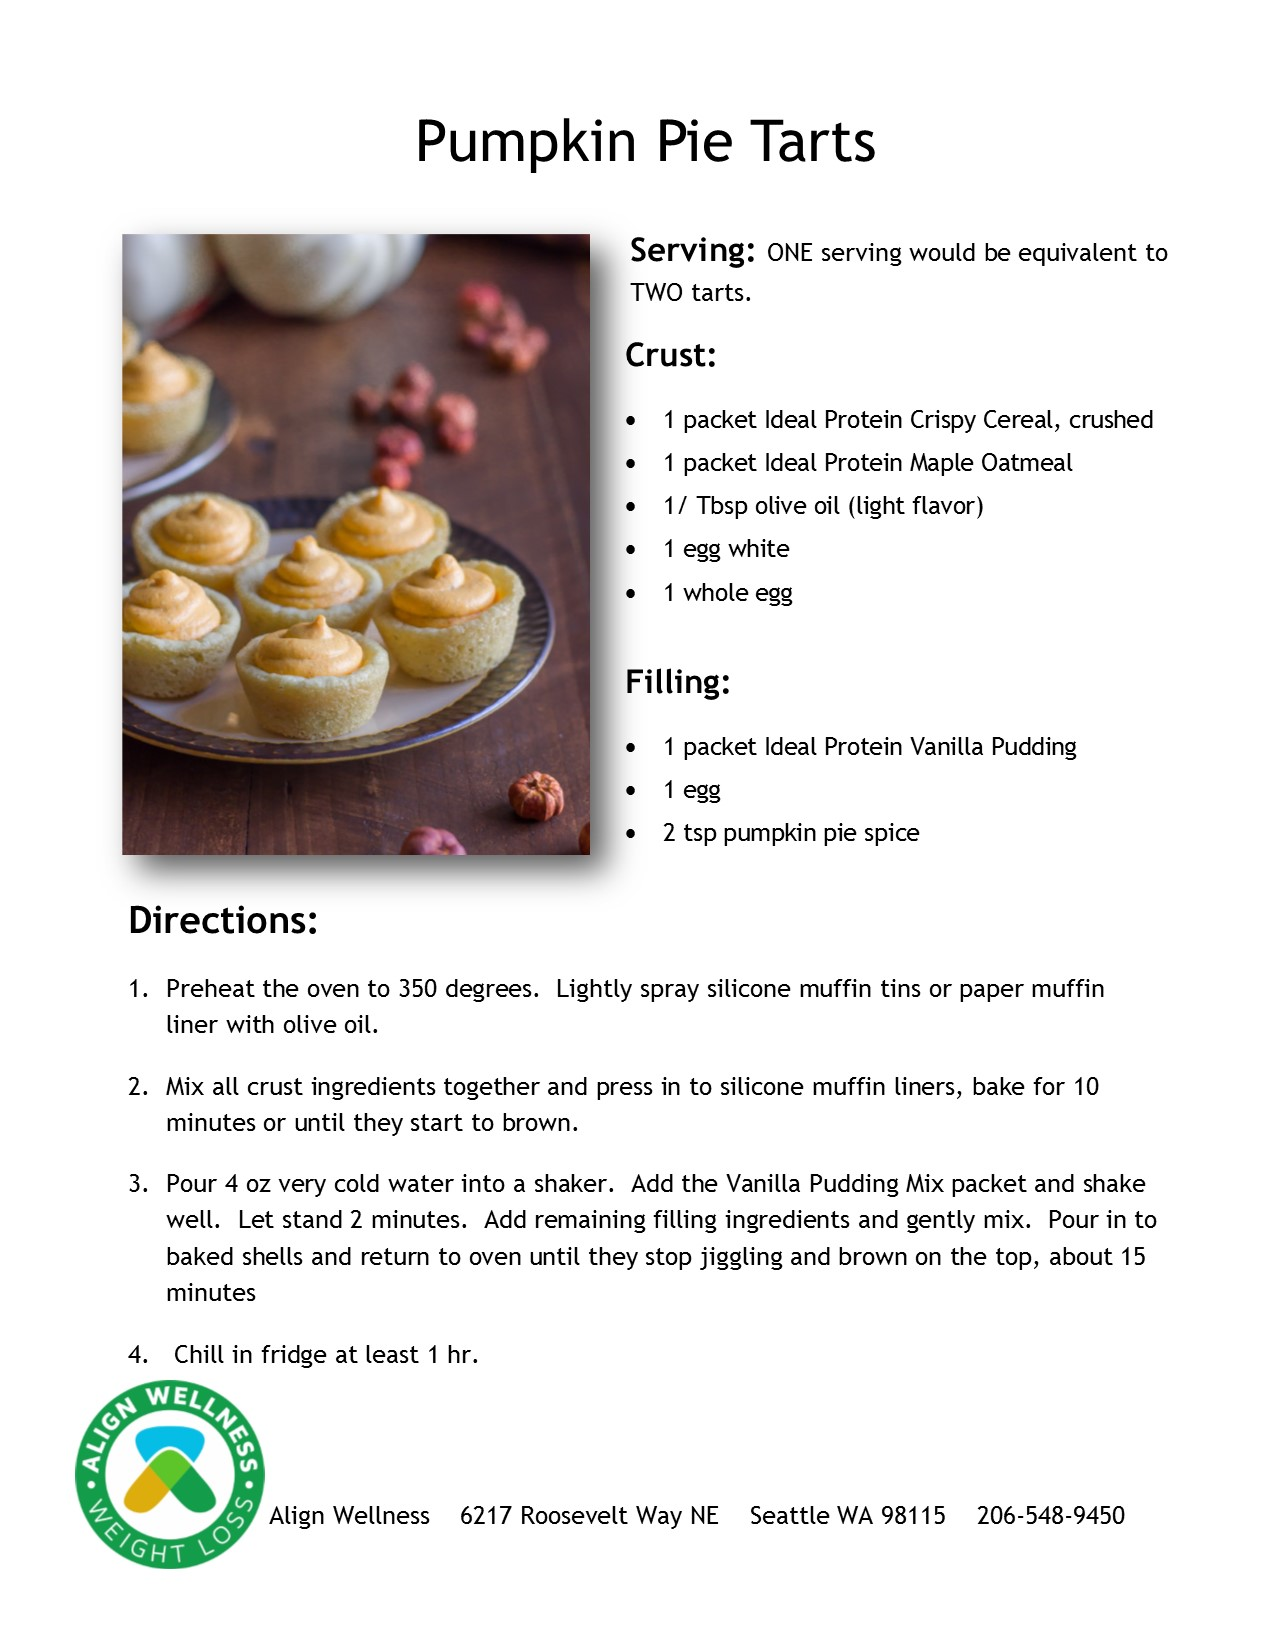 Pumpkin Pie Tarts Ideal Protein Recipe